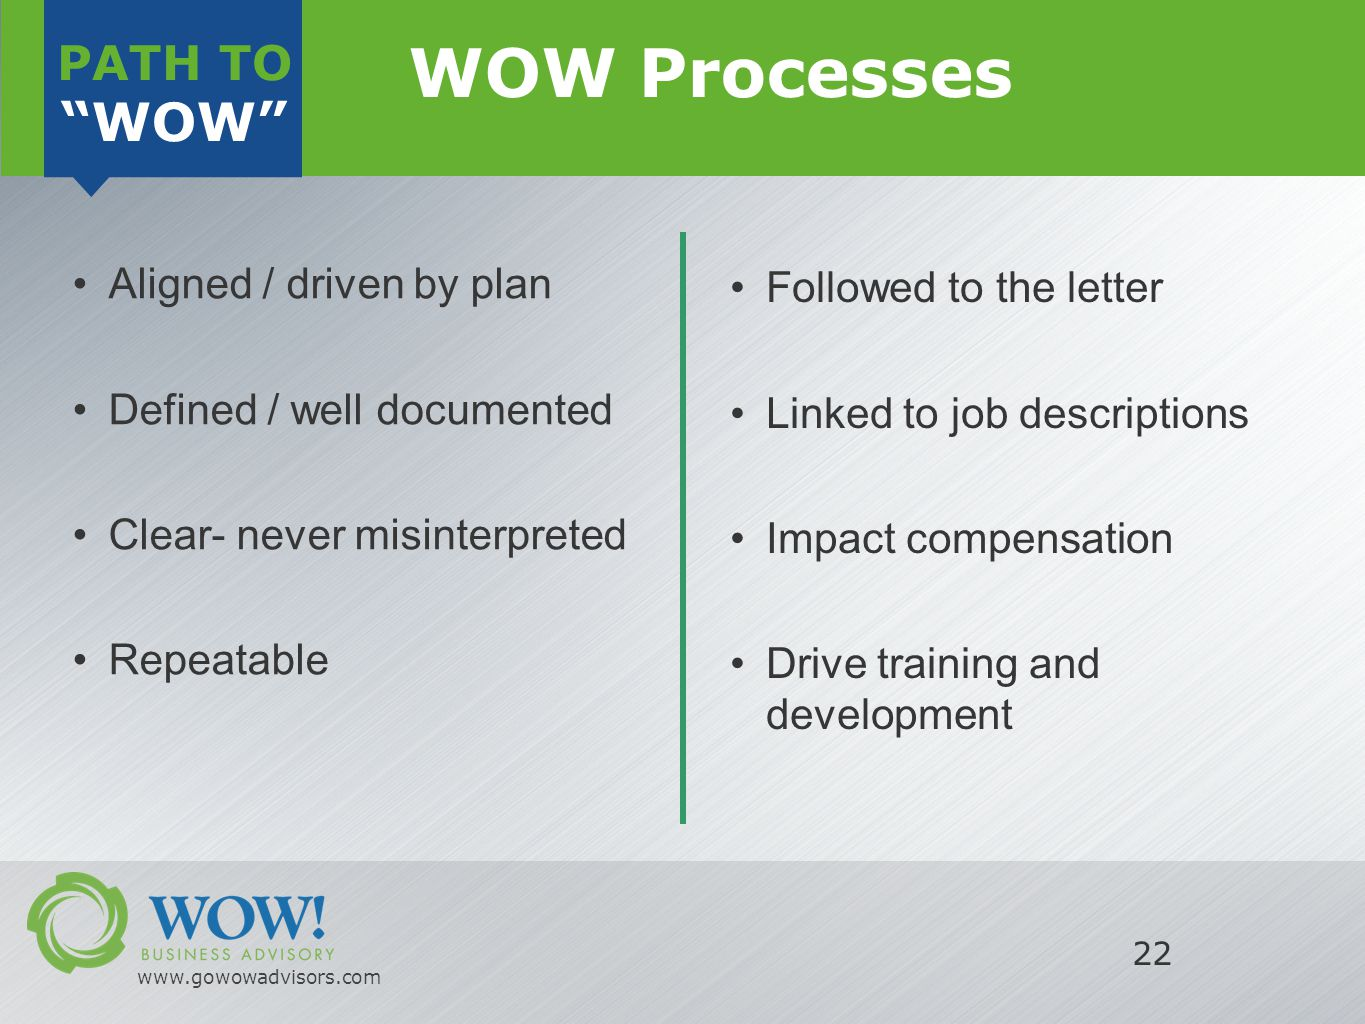 PATH TO WOW www.gowowadvisors.com 22 Aligned / driven by plan Defined / well documented Clear- never misinterpreted Repeatable Followed to the letter Linked to job descriptions Impact compensation Drive training and development WOW Processes